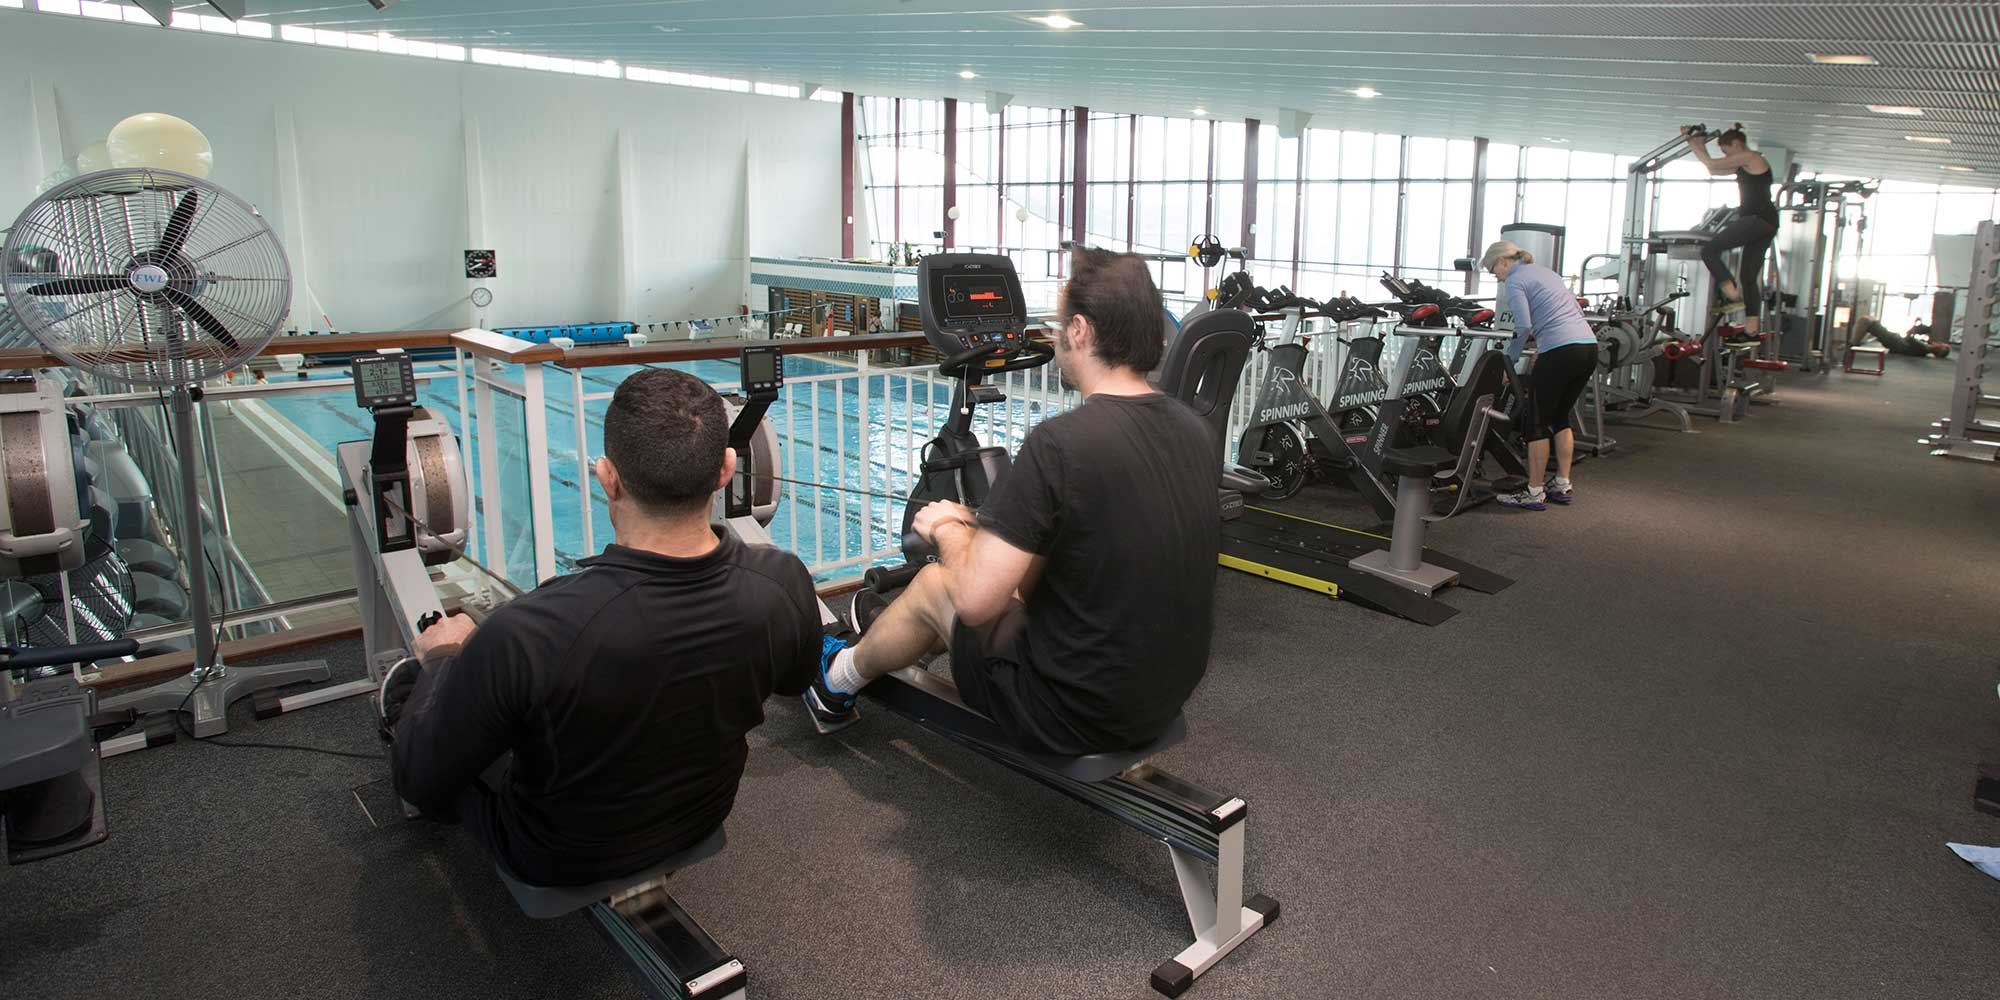 Using the rowing machines at Freyberg Pool & Fitness Centre.